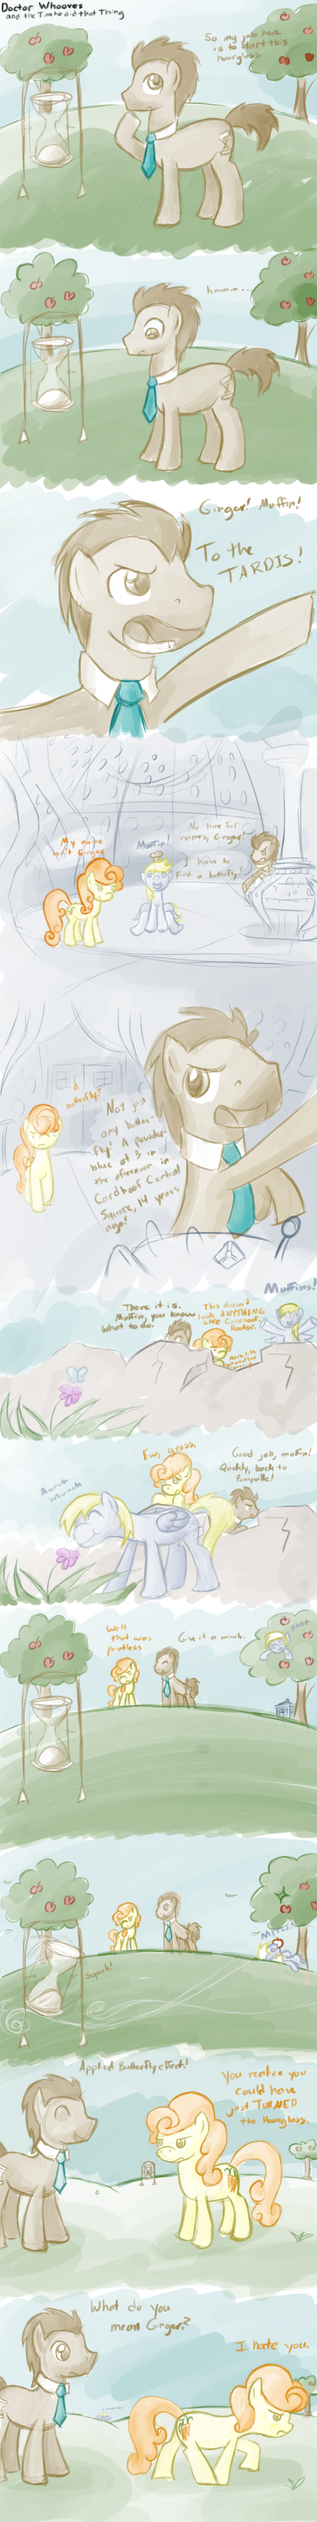 Another Doctor Whooves Comic by feather-chan